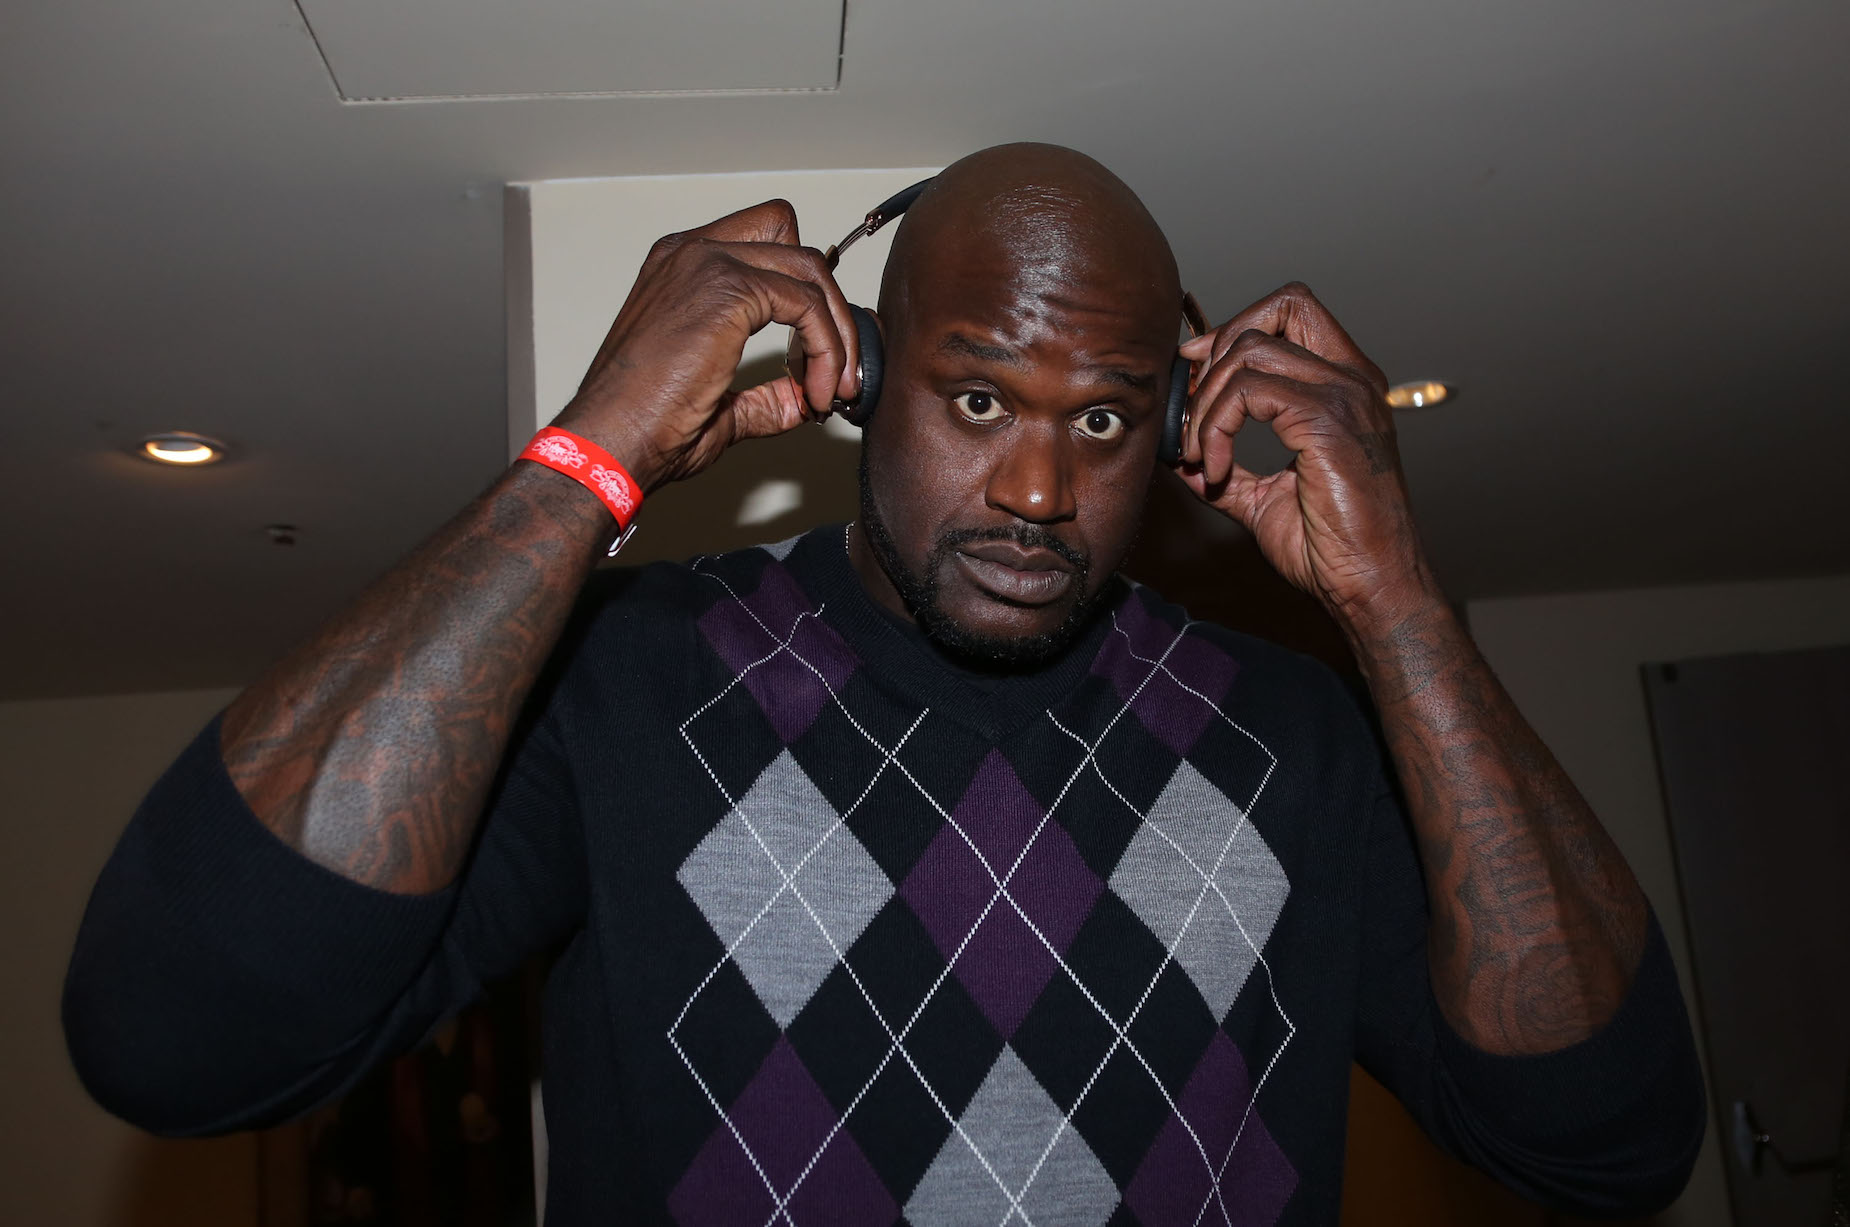 Shaquille O'Neal thinks that, if he hadn't fallen asleep, he could have saved The Notorious B.I.G.'s lifel